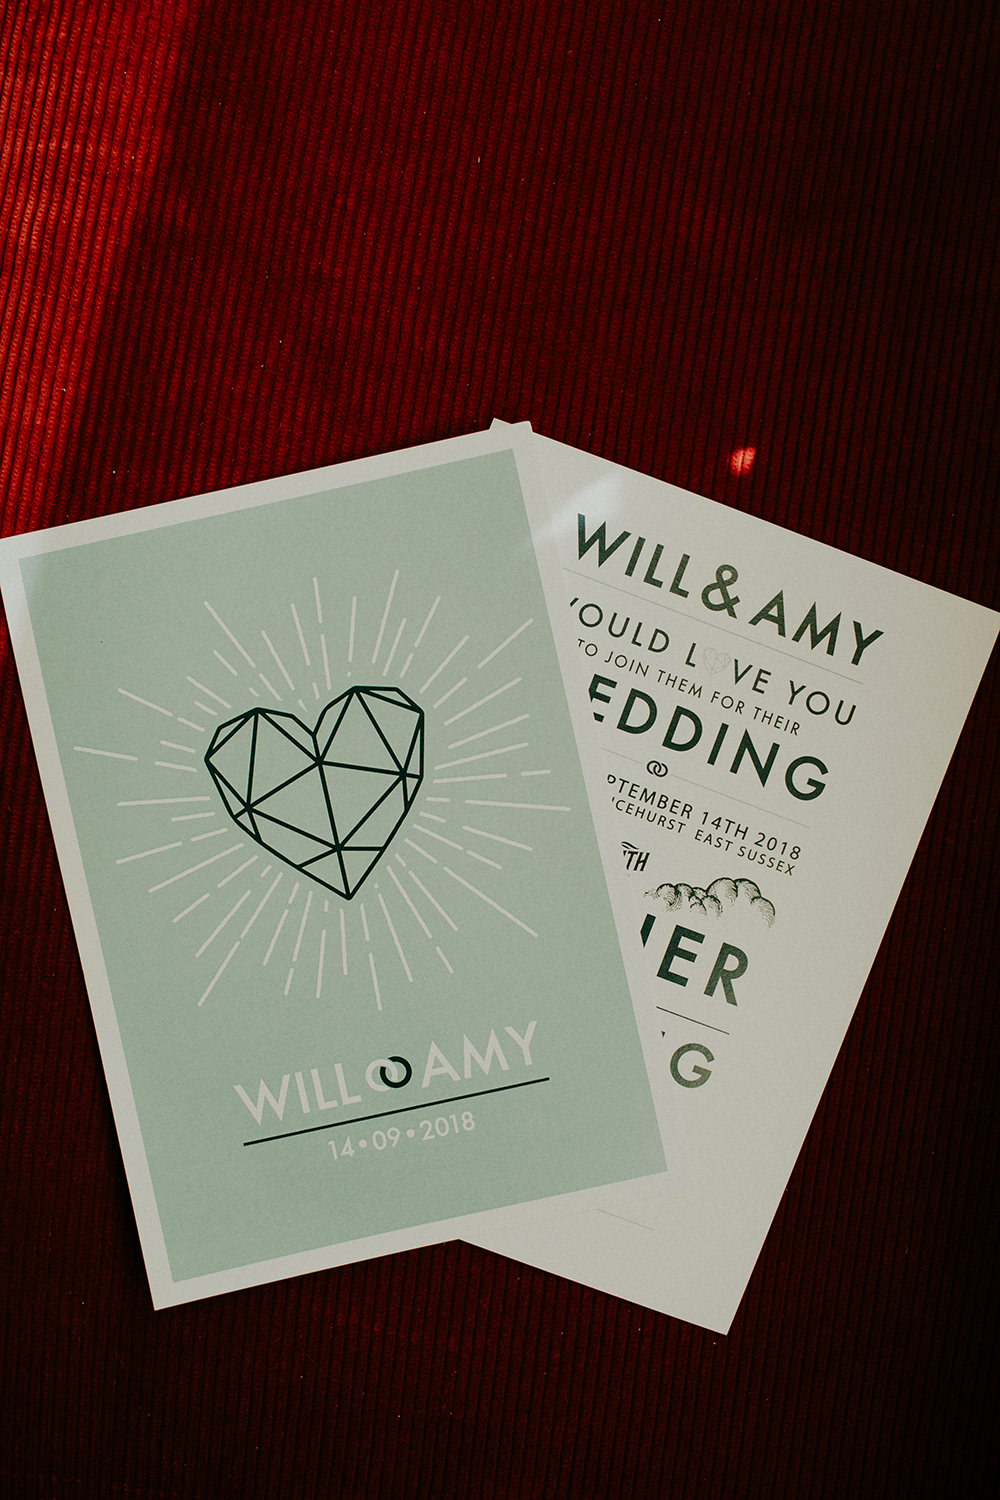 Stationery Invites Invitations Graphic Modern Green Heart Geometric Bell Ticehurst Wedding Irene Yap Photography